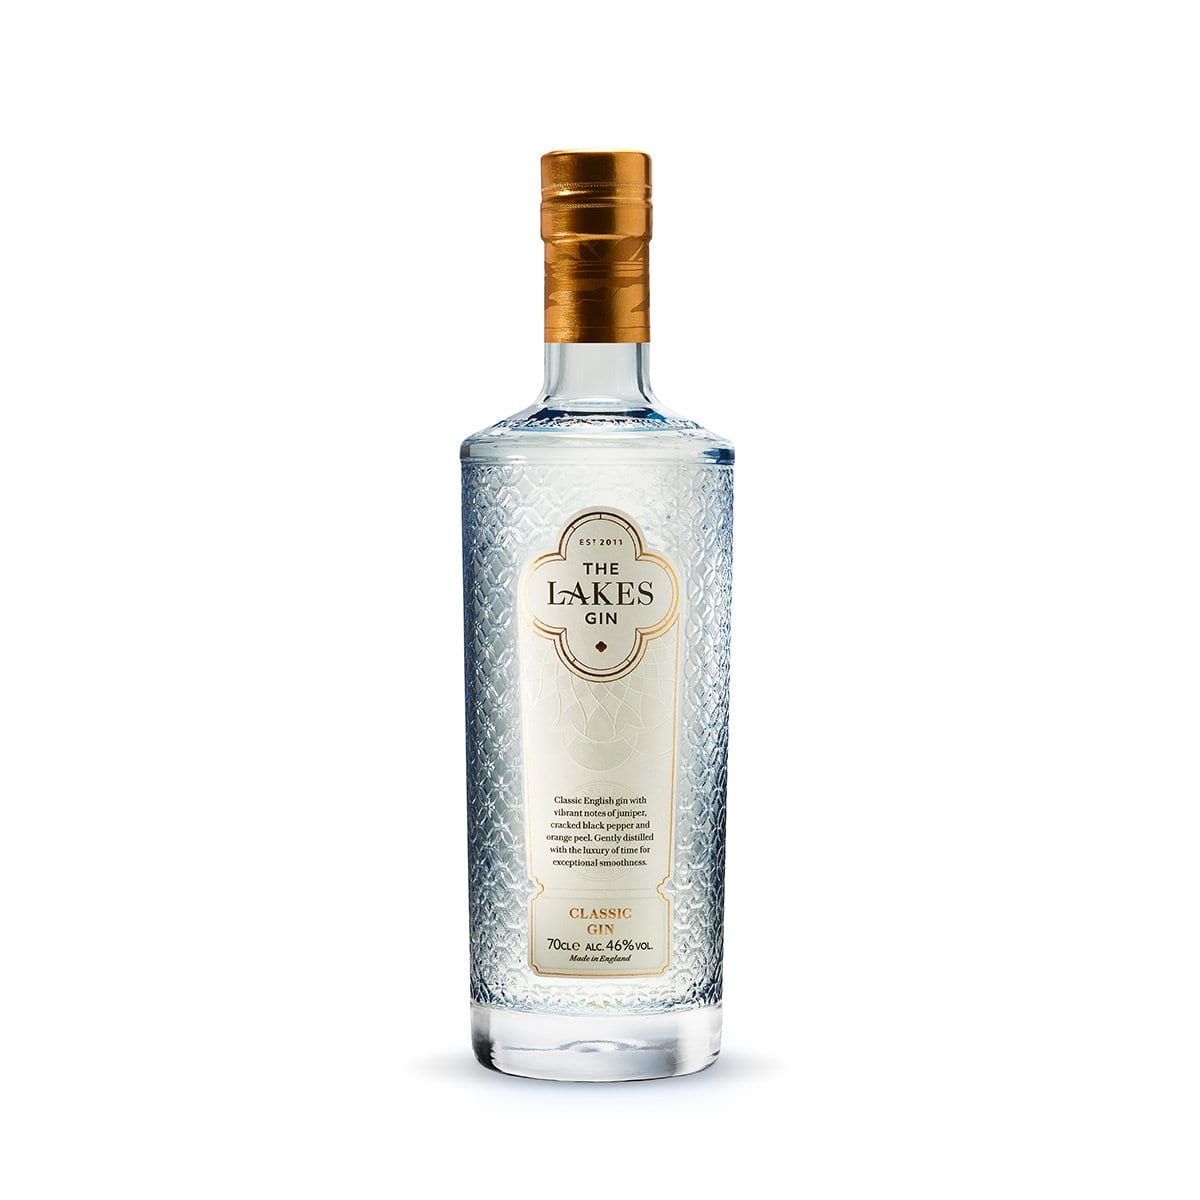 The Lakes Gin Bottle - the Gin Guild